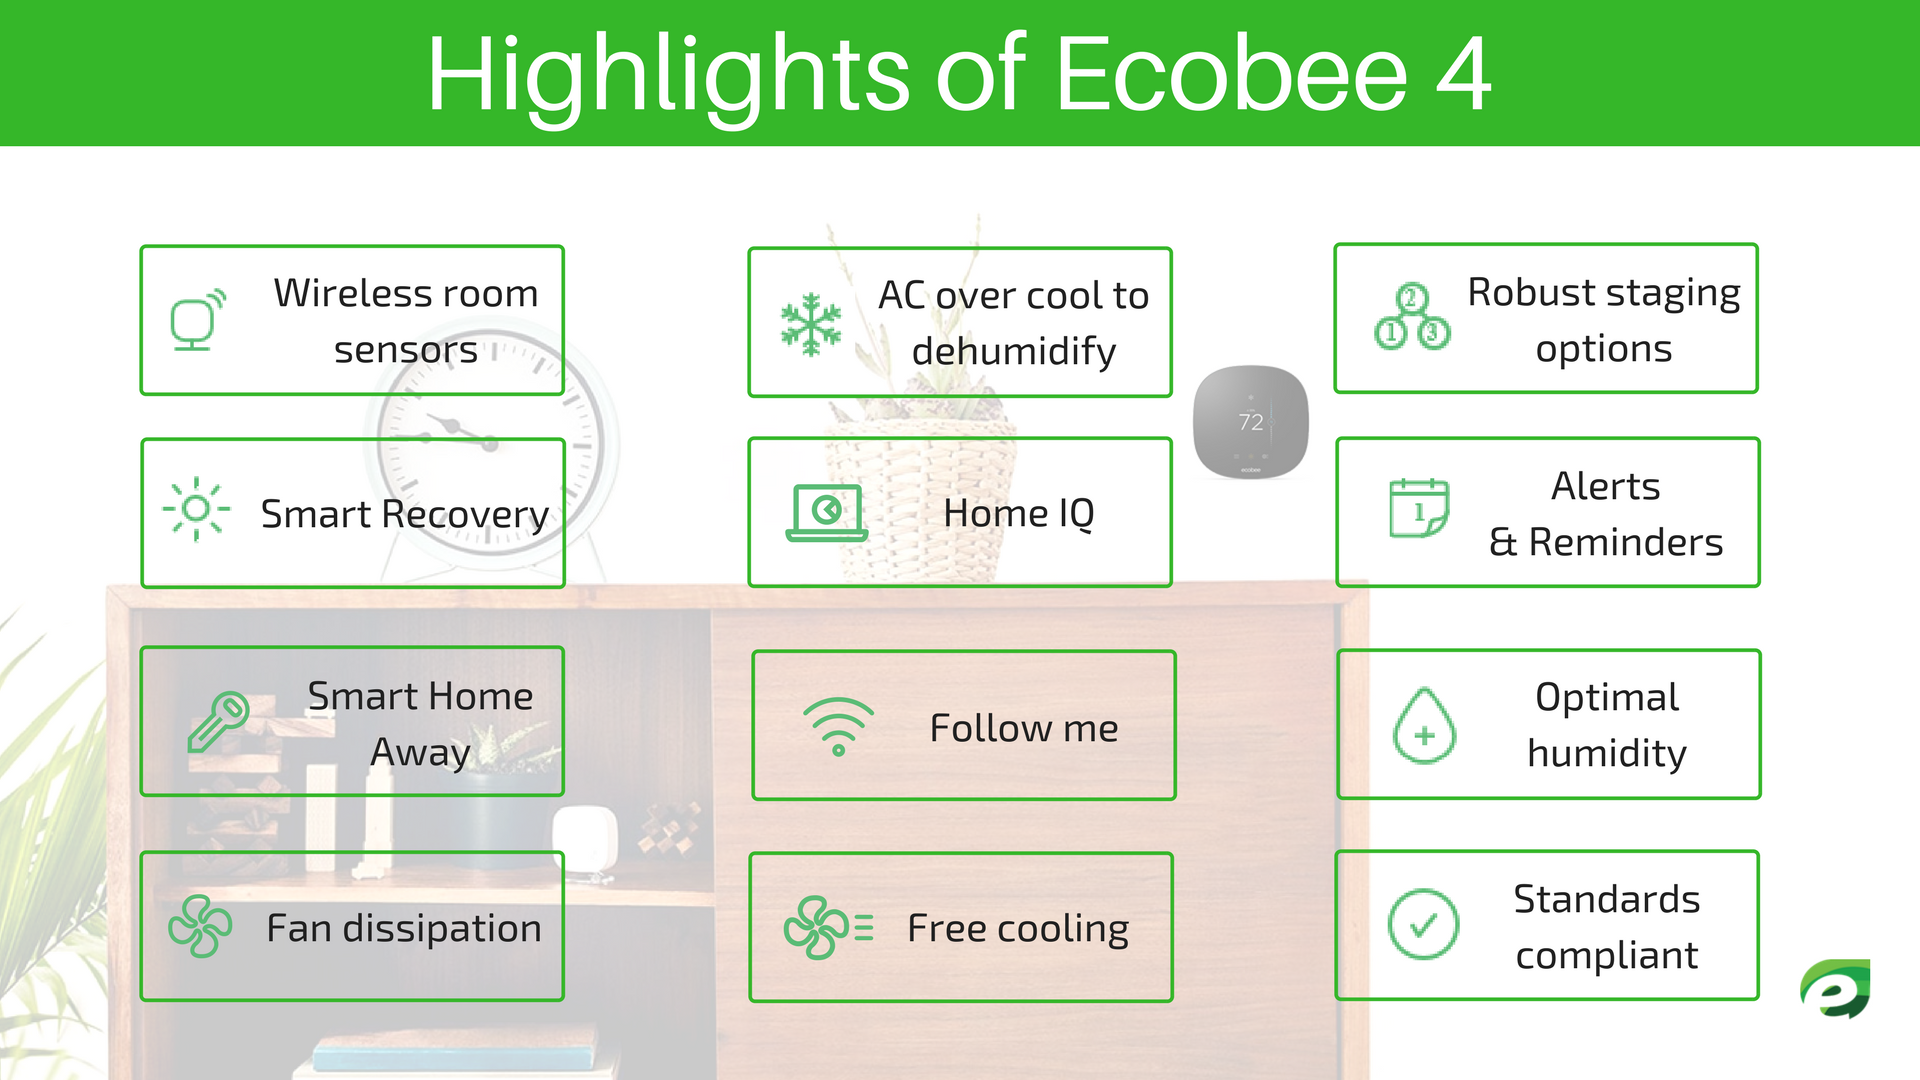 Highlights - Ecobee4